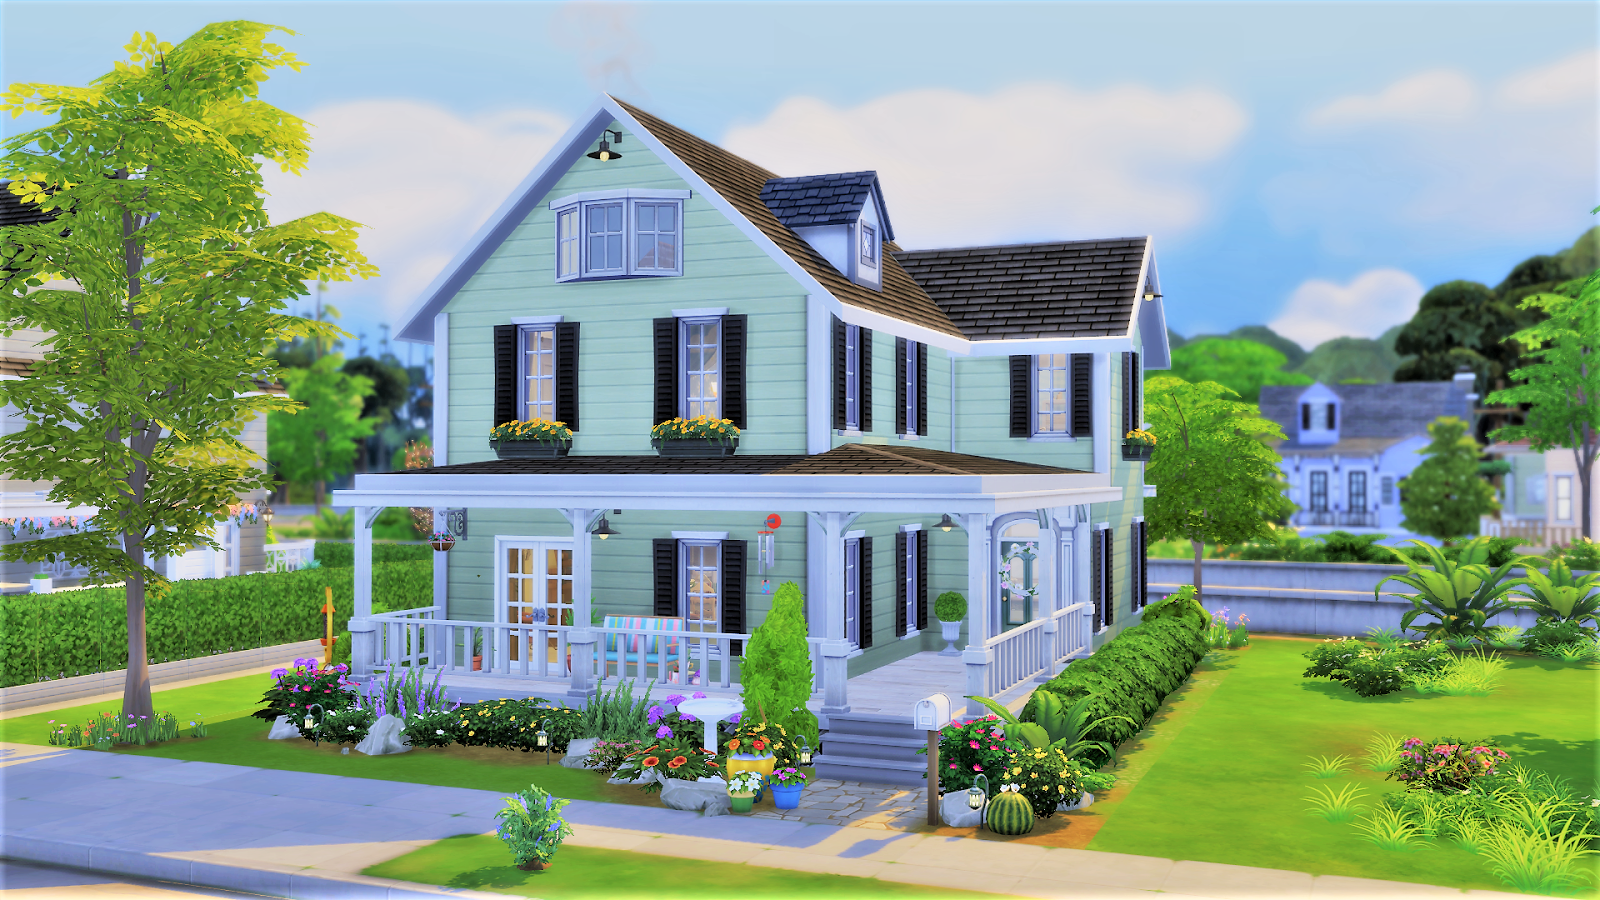 2017 05 07 17 41 27+2 - 38+ Small House Floor Plans Sims 4  PNG